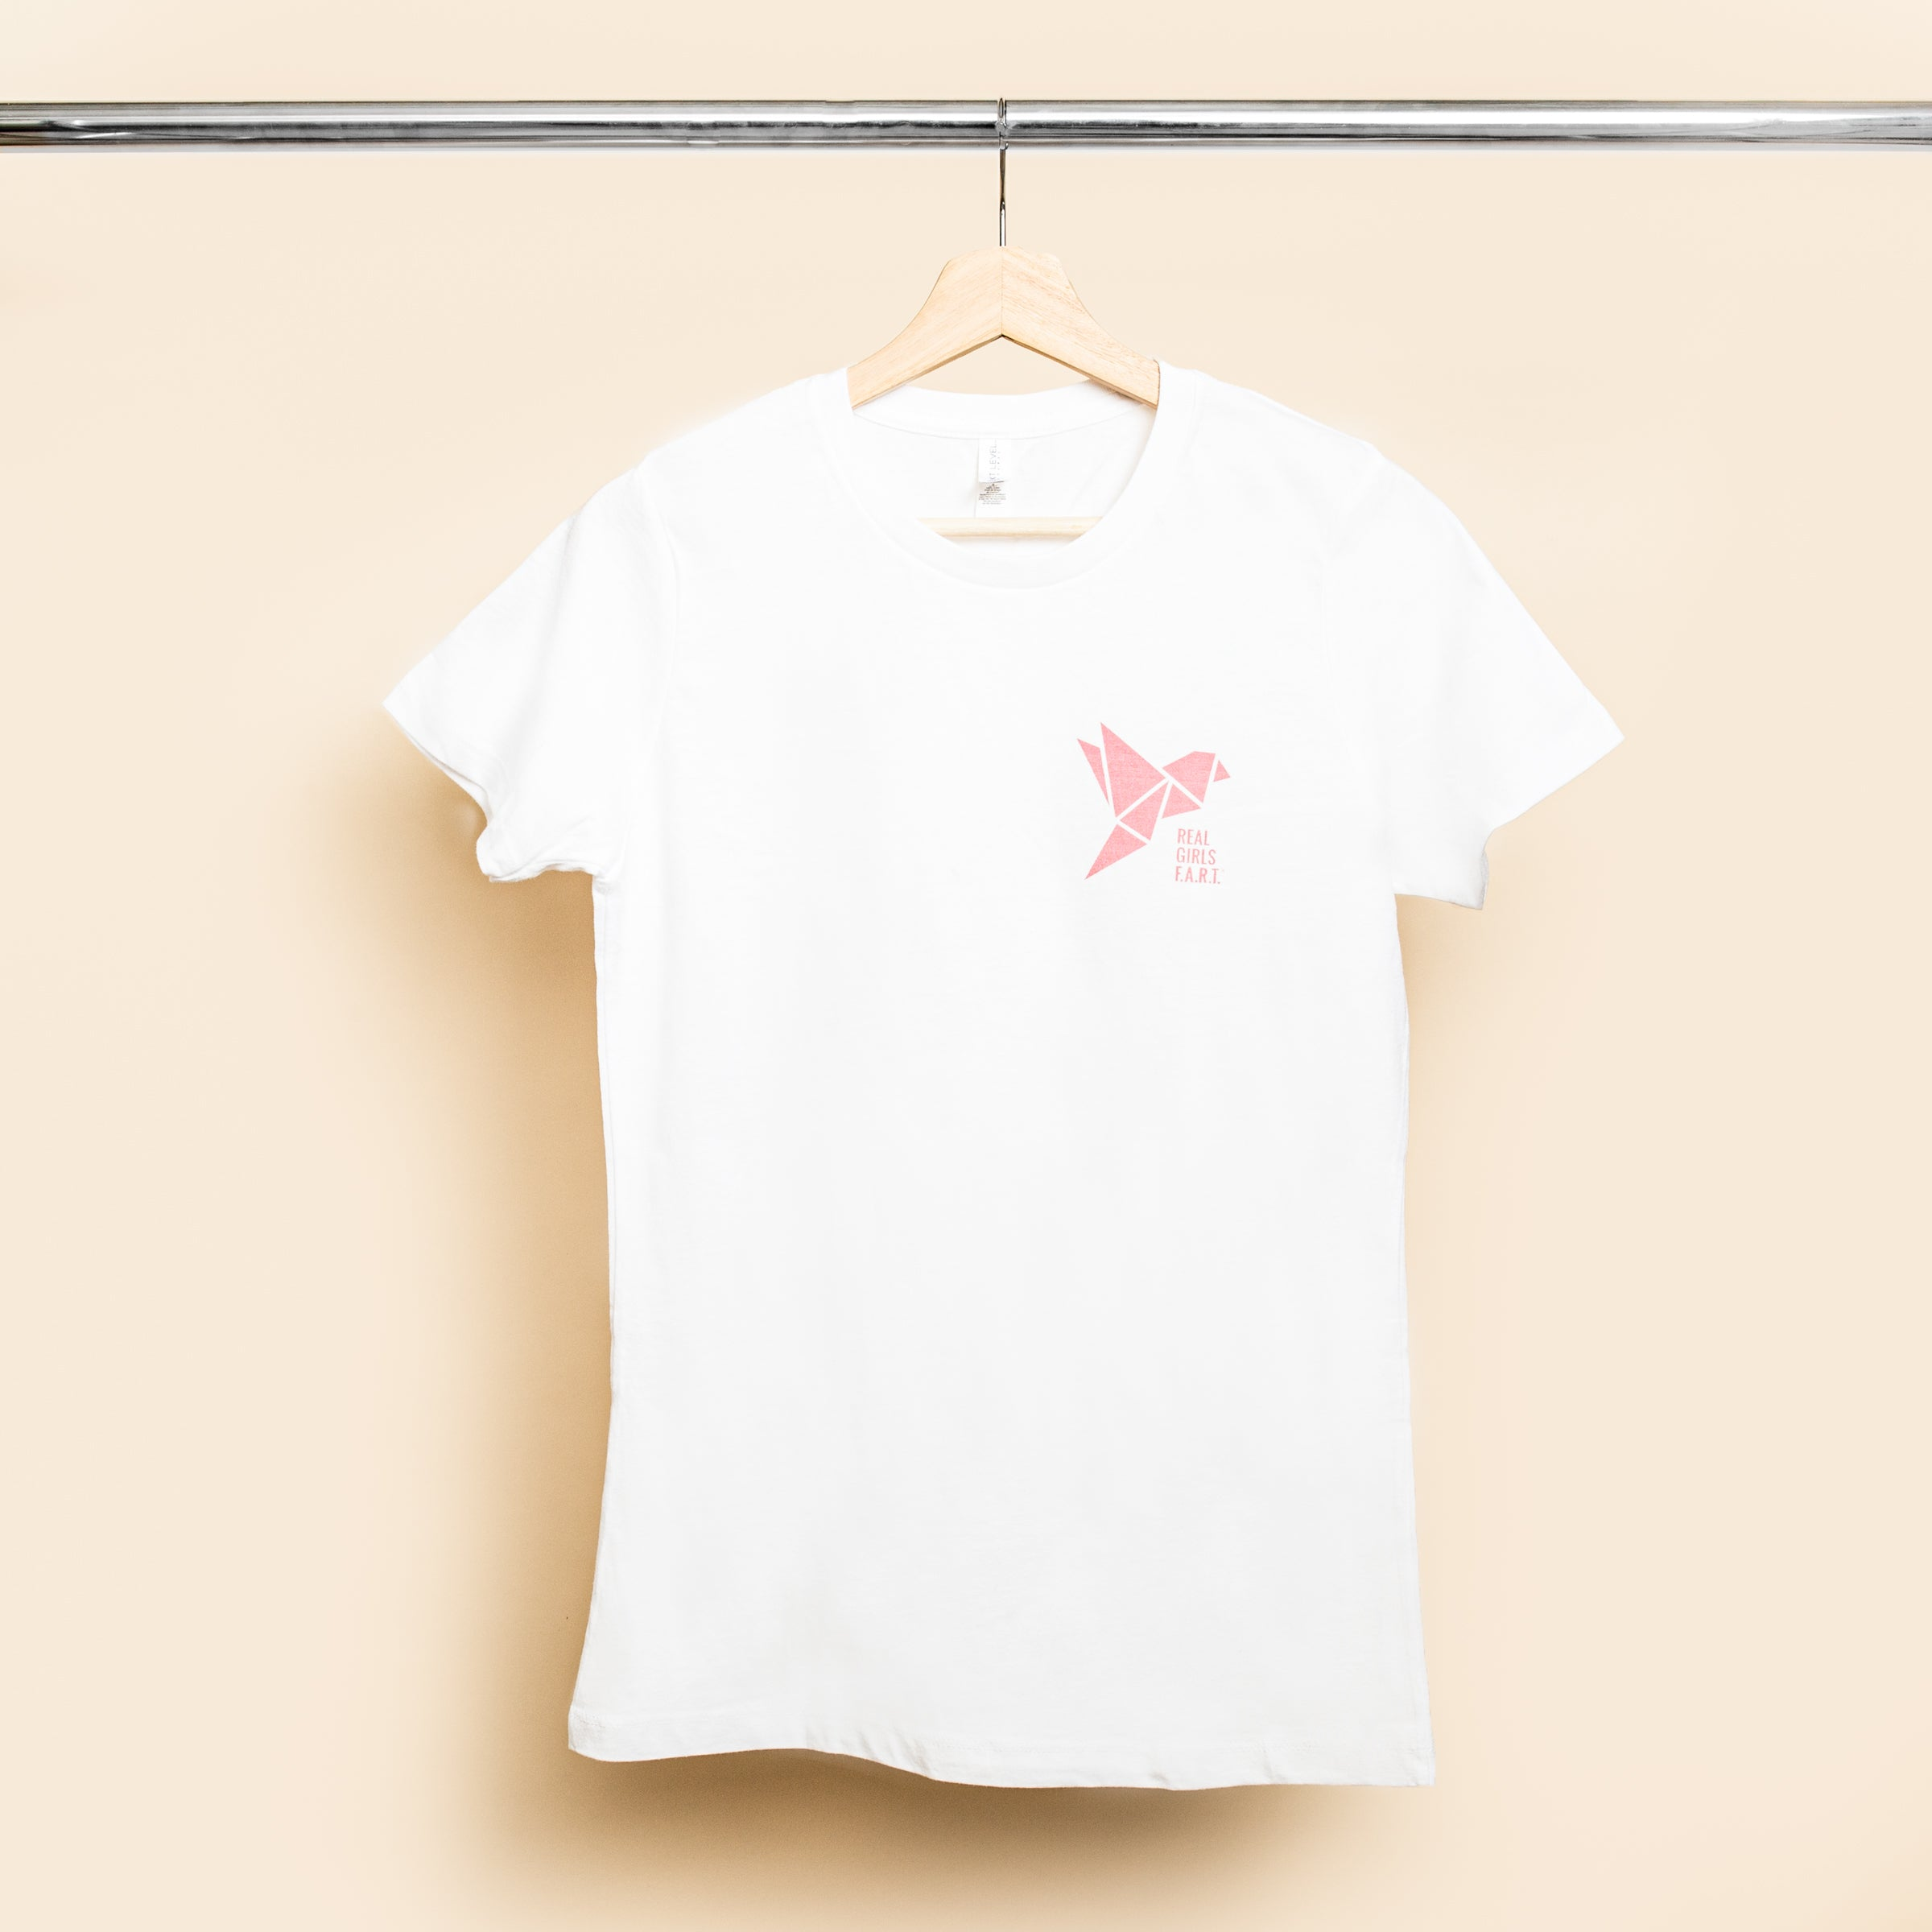 Real Girls F.A.R.T. White Short Sleeve Graphic T-shirt